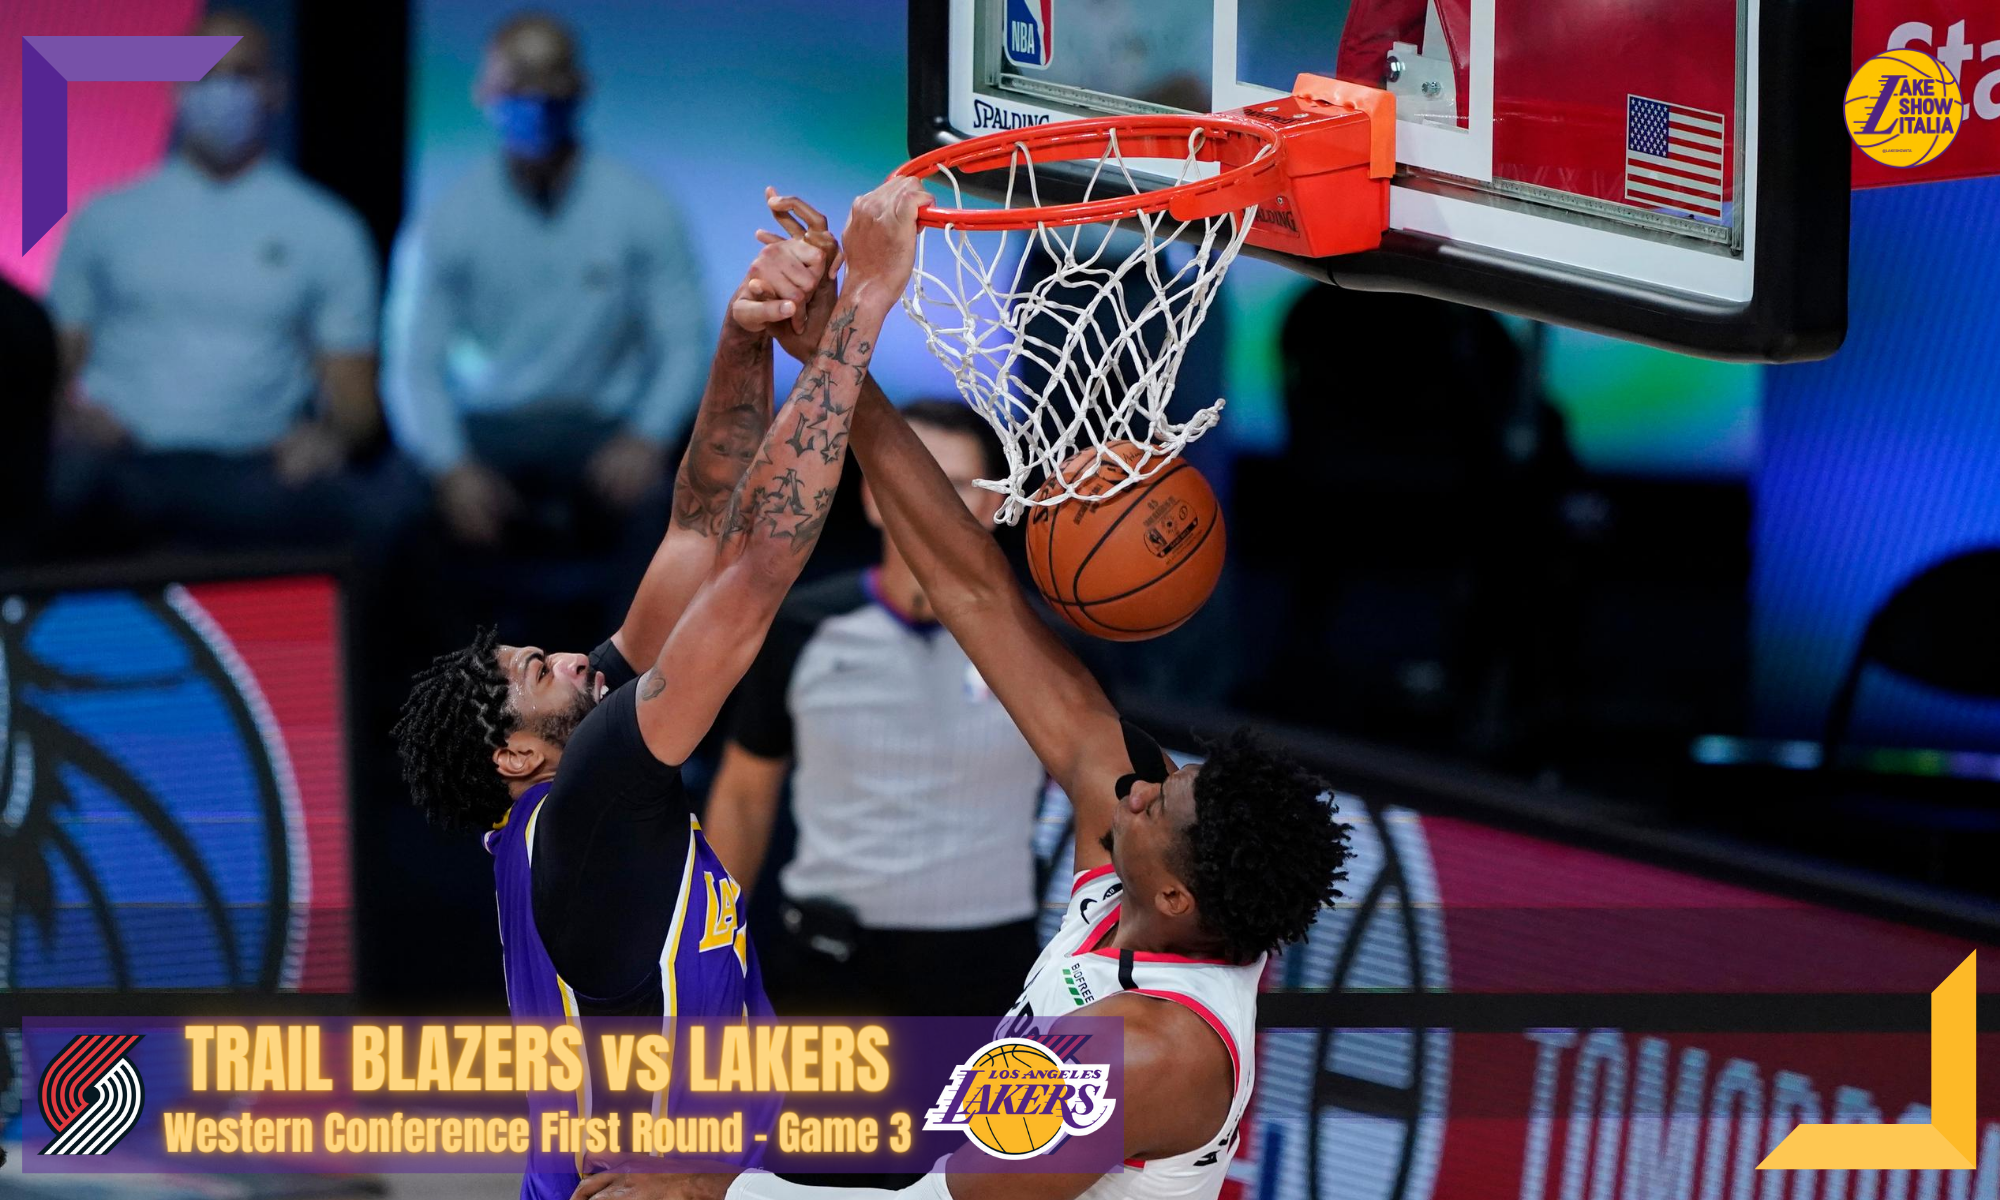 Los Angeles Lakers forward Anthony Davis (3) scores over Portland Trail Blazers center Hassan Whiteside (21) during the first half of an NBA basketball first round playoff game, Saturday, Aug. 22, 2020, in Lake Buena Vista, Fla.